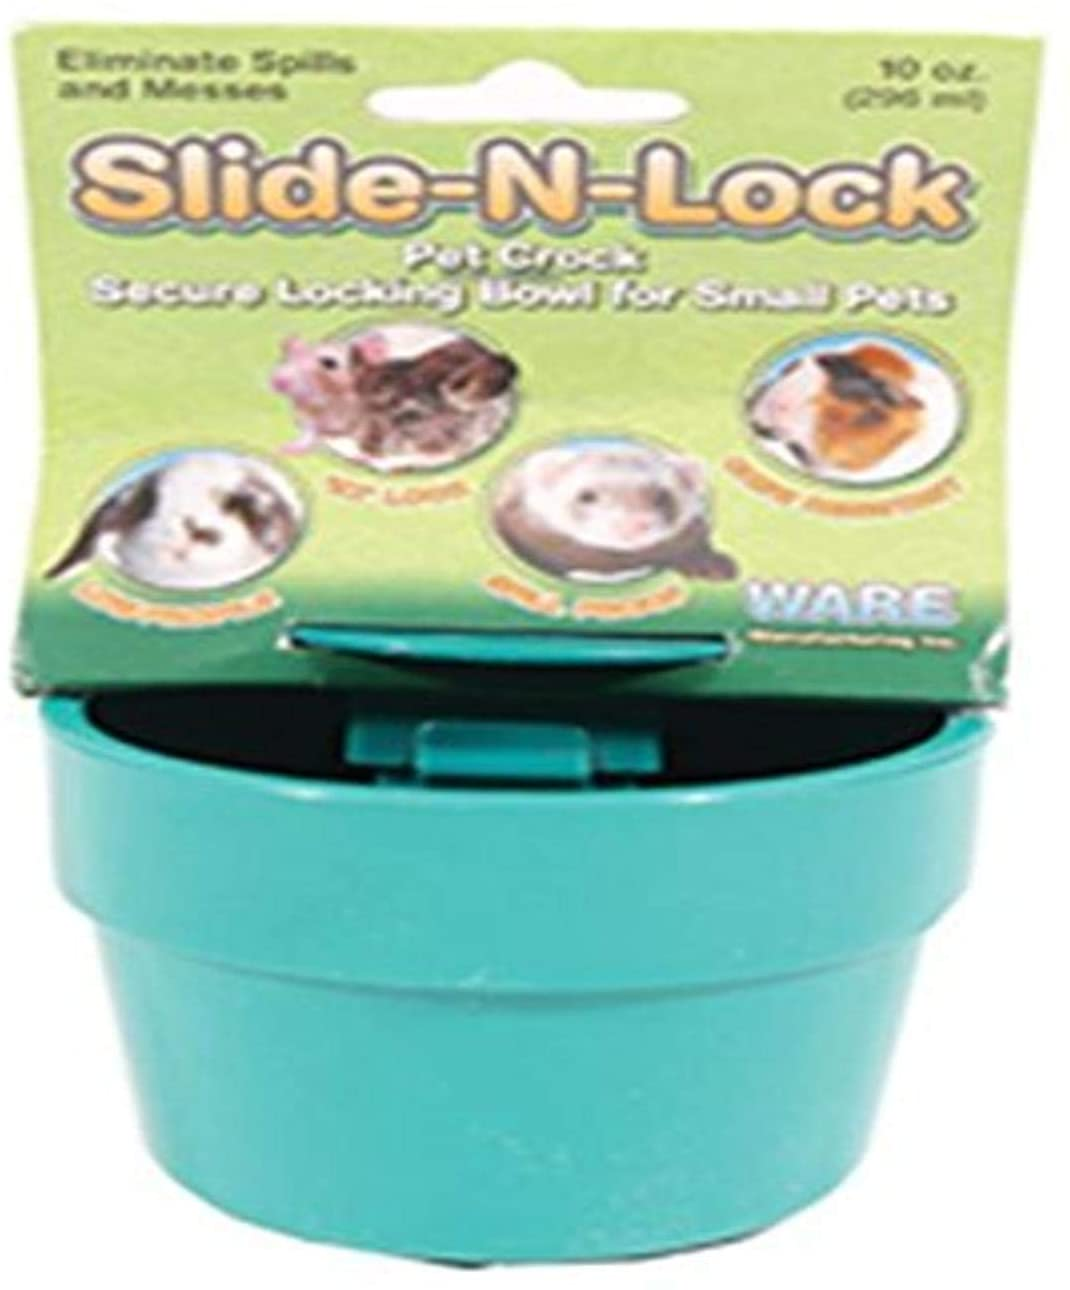 Ware Manufacturing Ware Plastic Slide-N-Lock Small Pet Crock, 10 Ounce, Assorted Colors